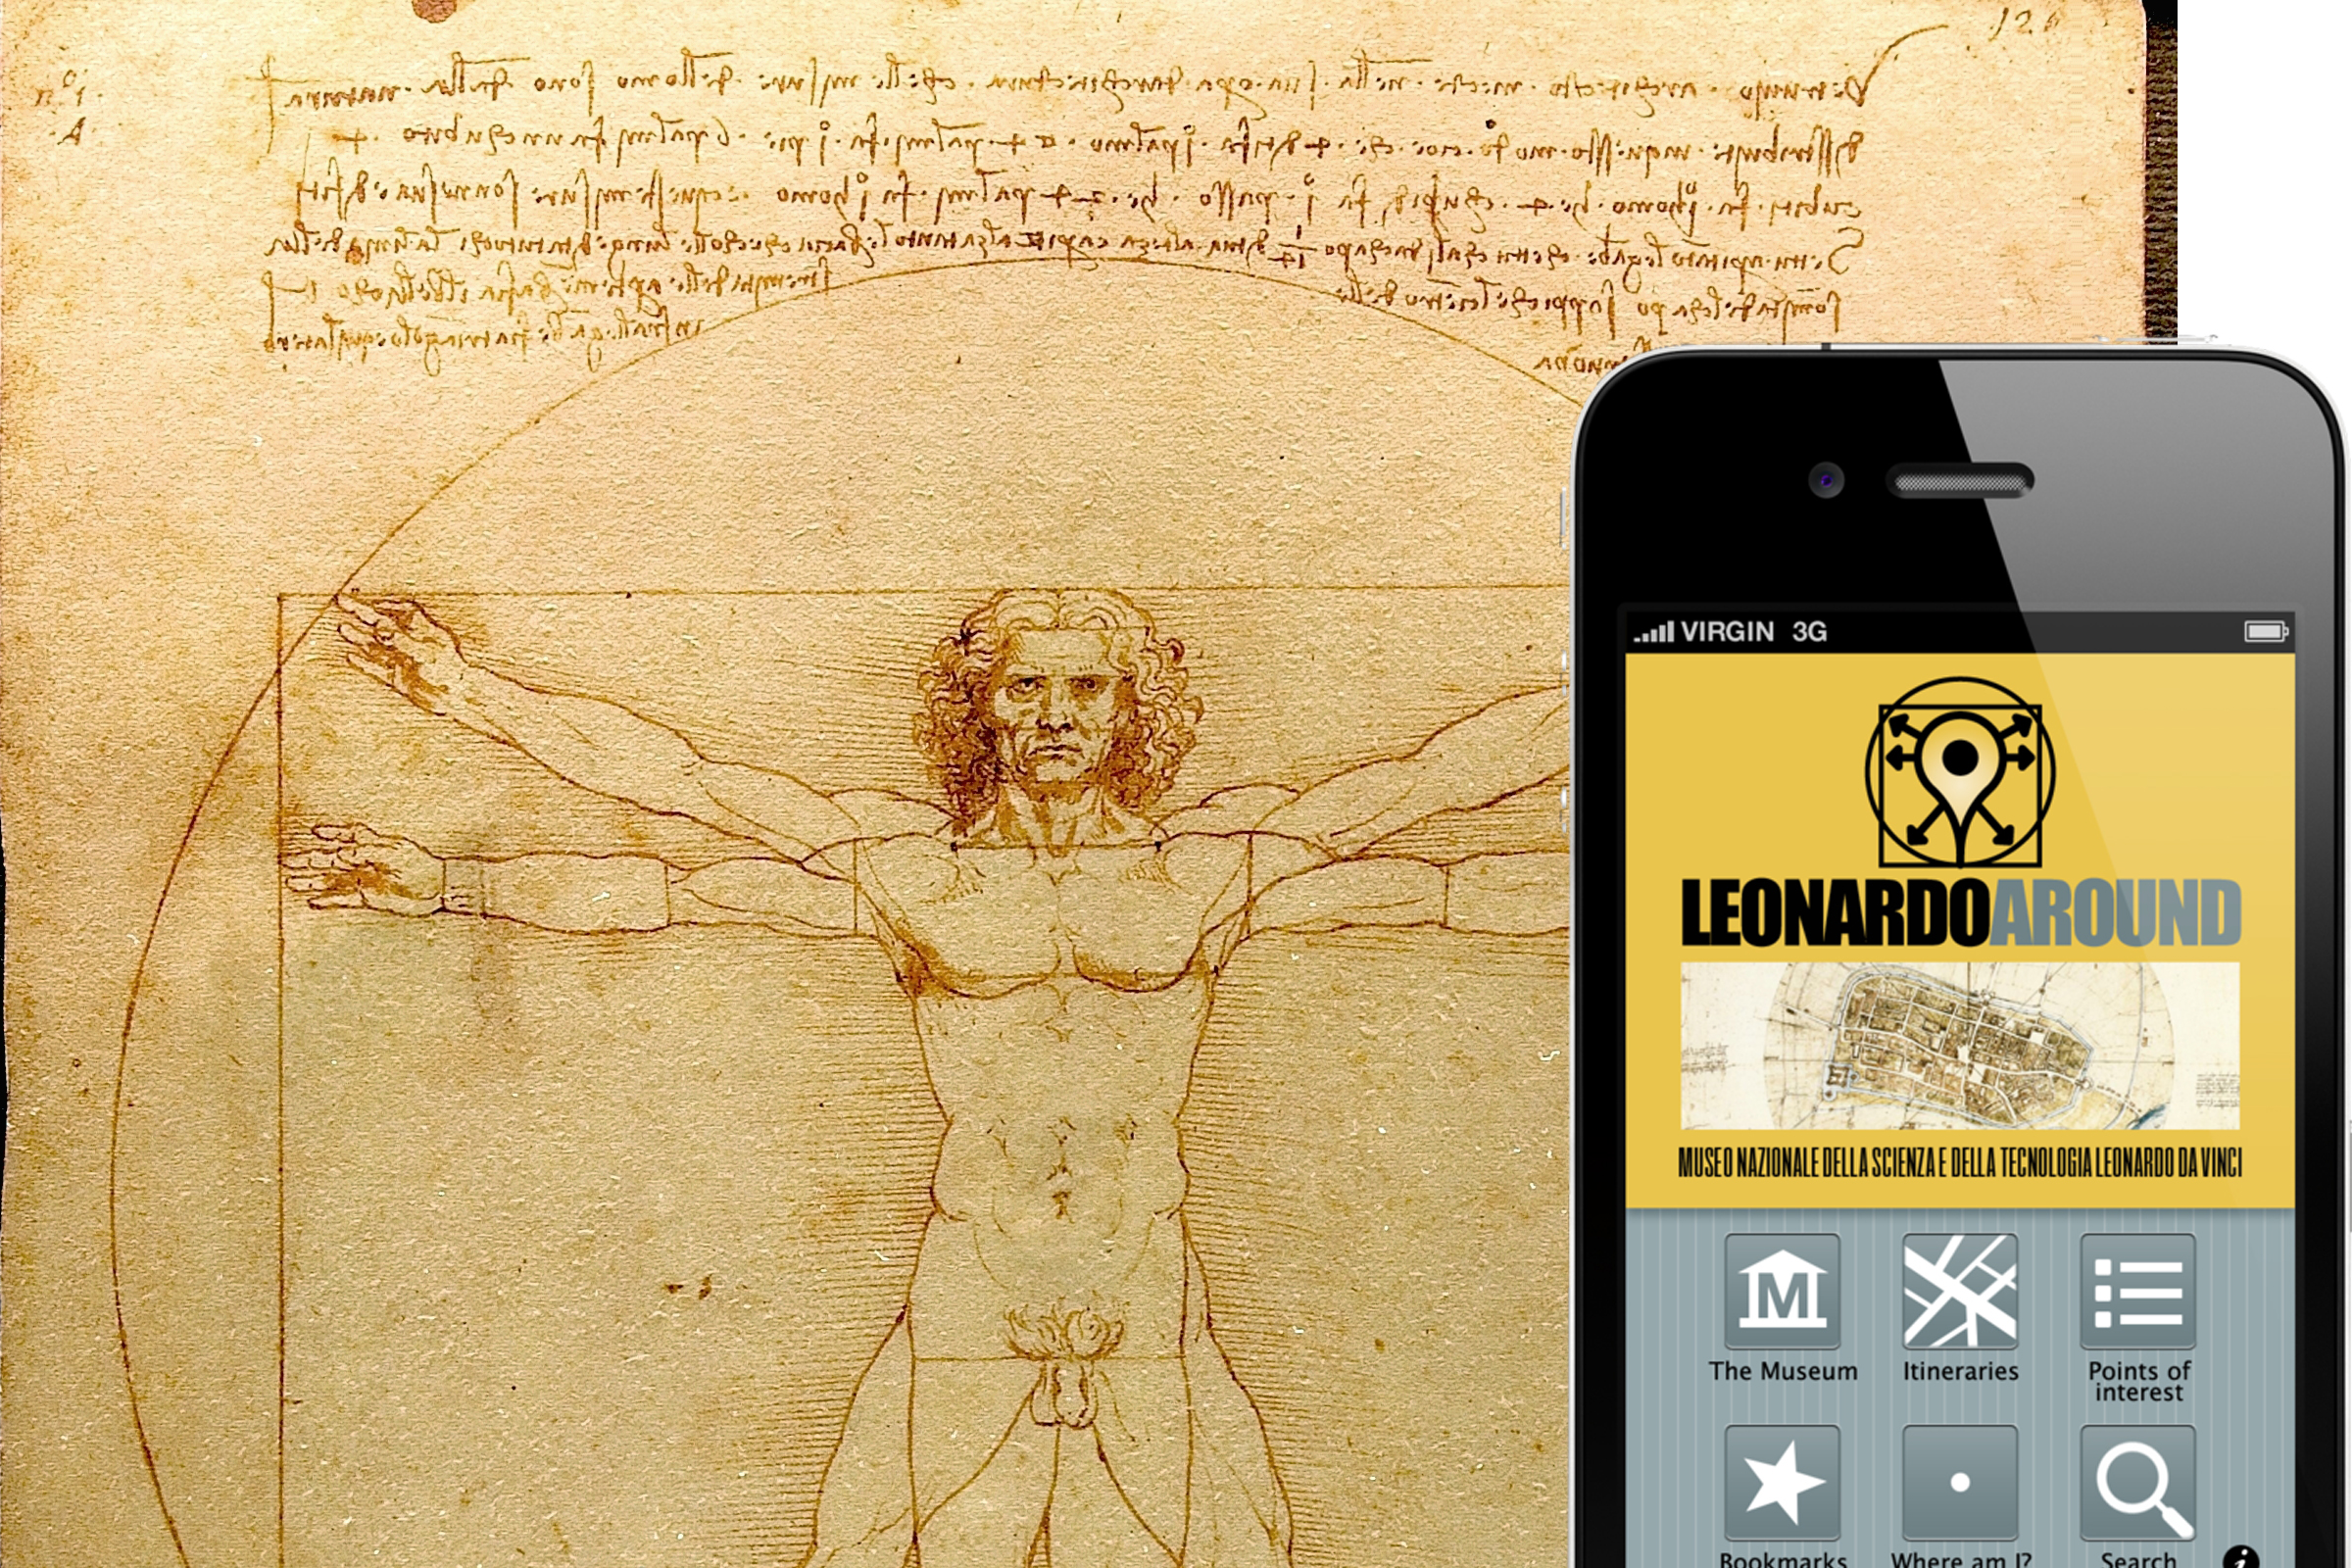 The Vitruvian man and the Leonoardoaroundapp